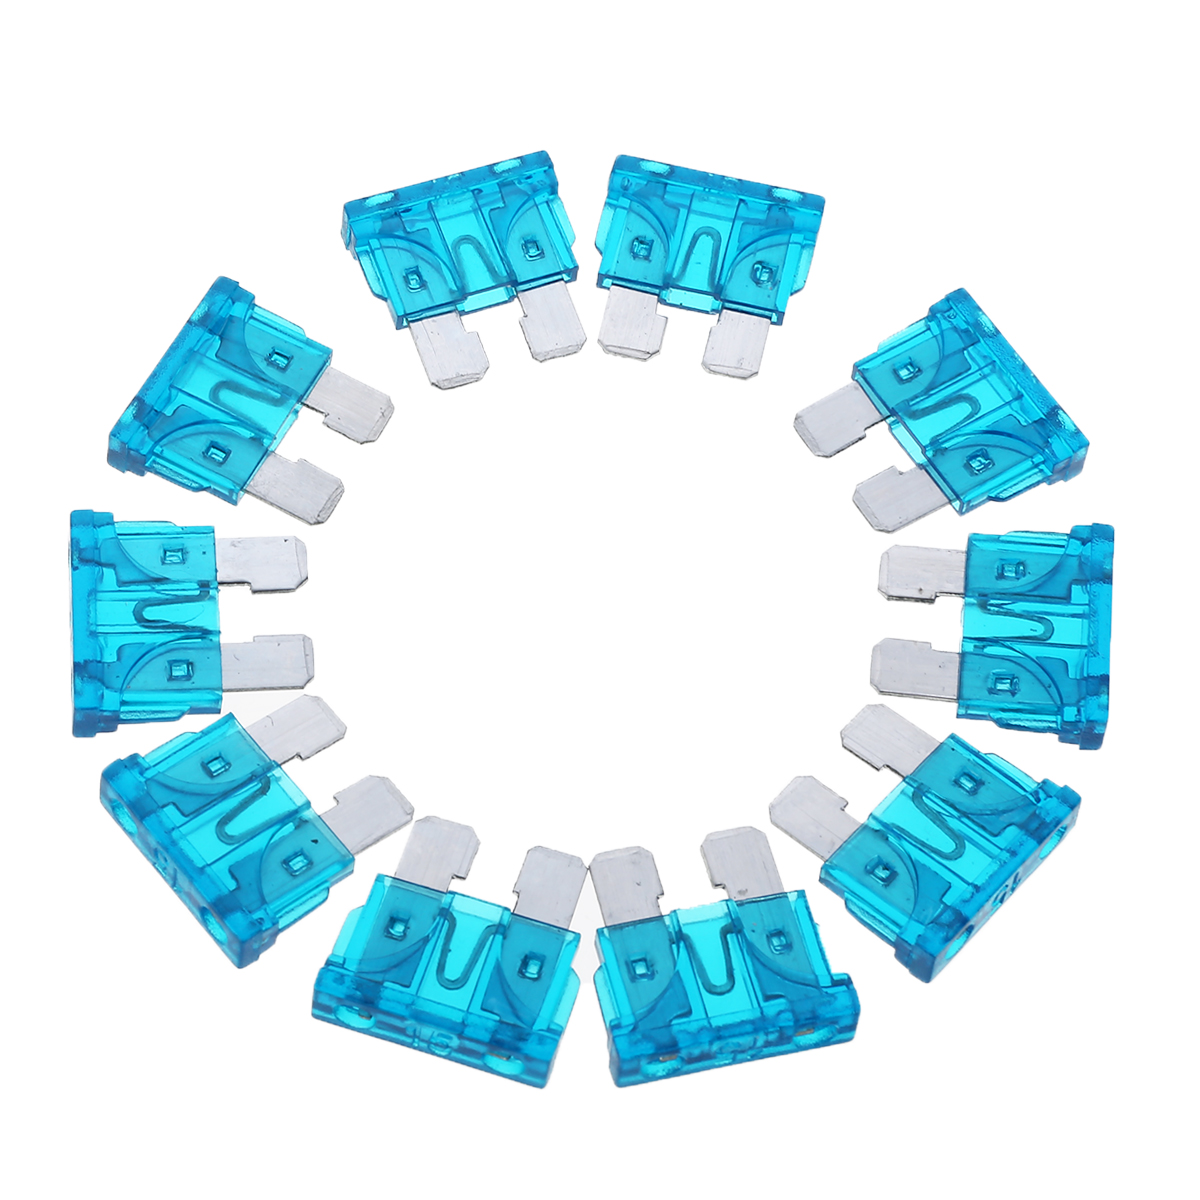 10Pcs 32V 15A Blue Color Coded Standard ATO ATC Blade Fuse For Auto Car Truck 2019 New in Fuses from Automobiles Motorcycles